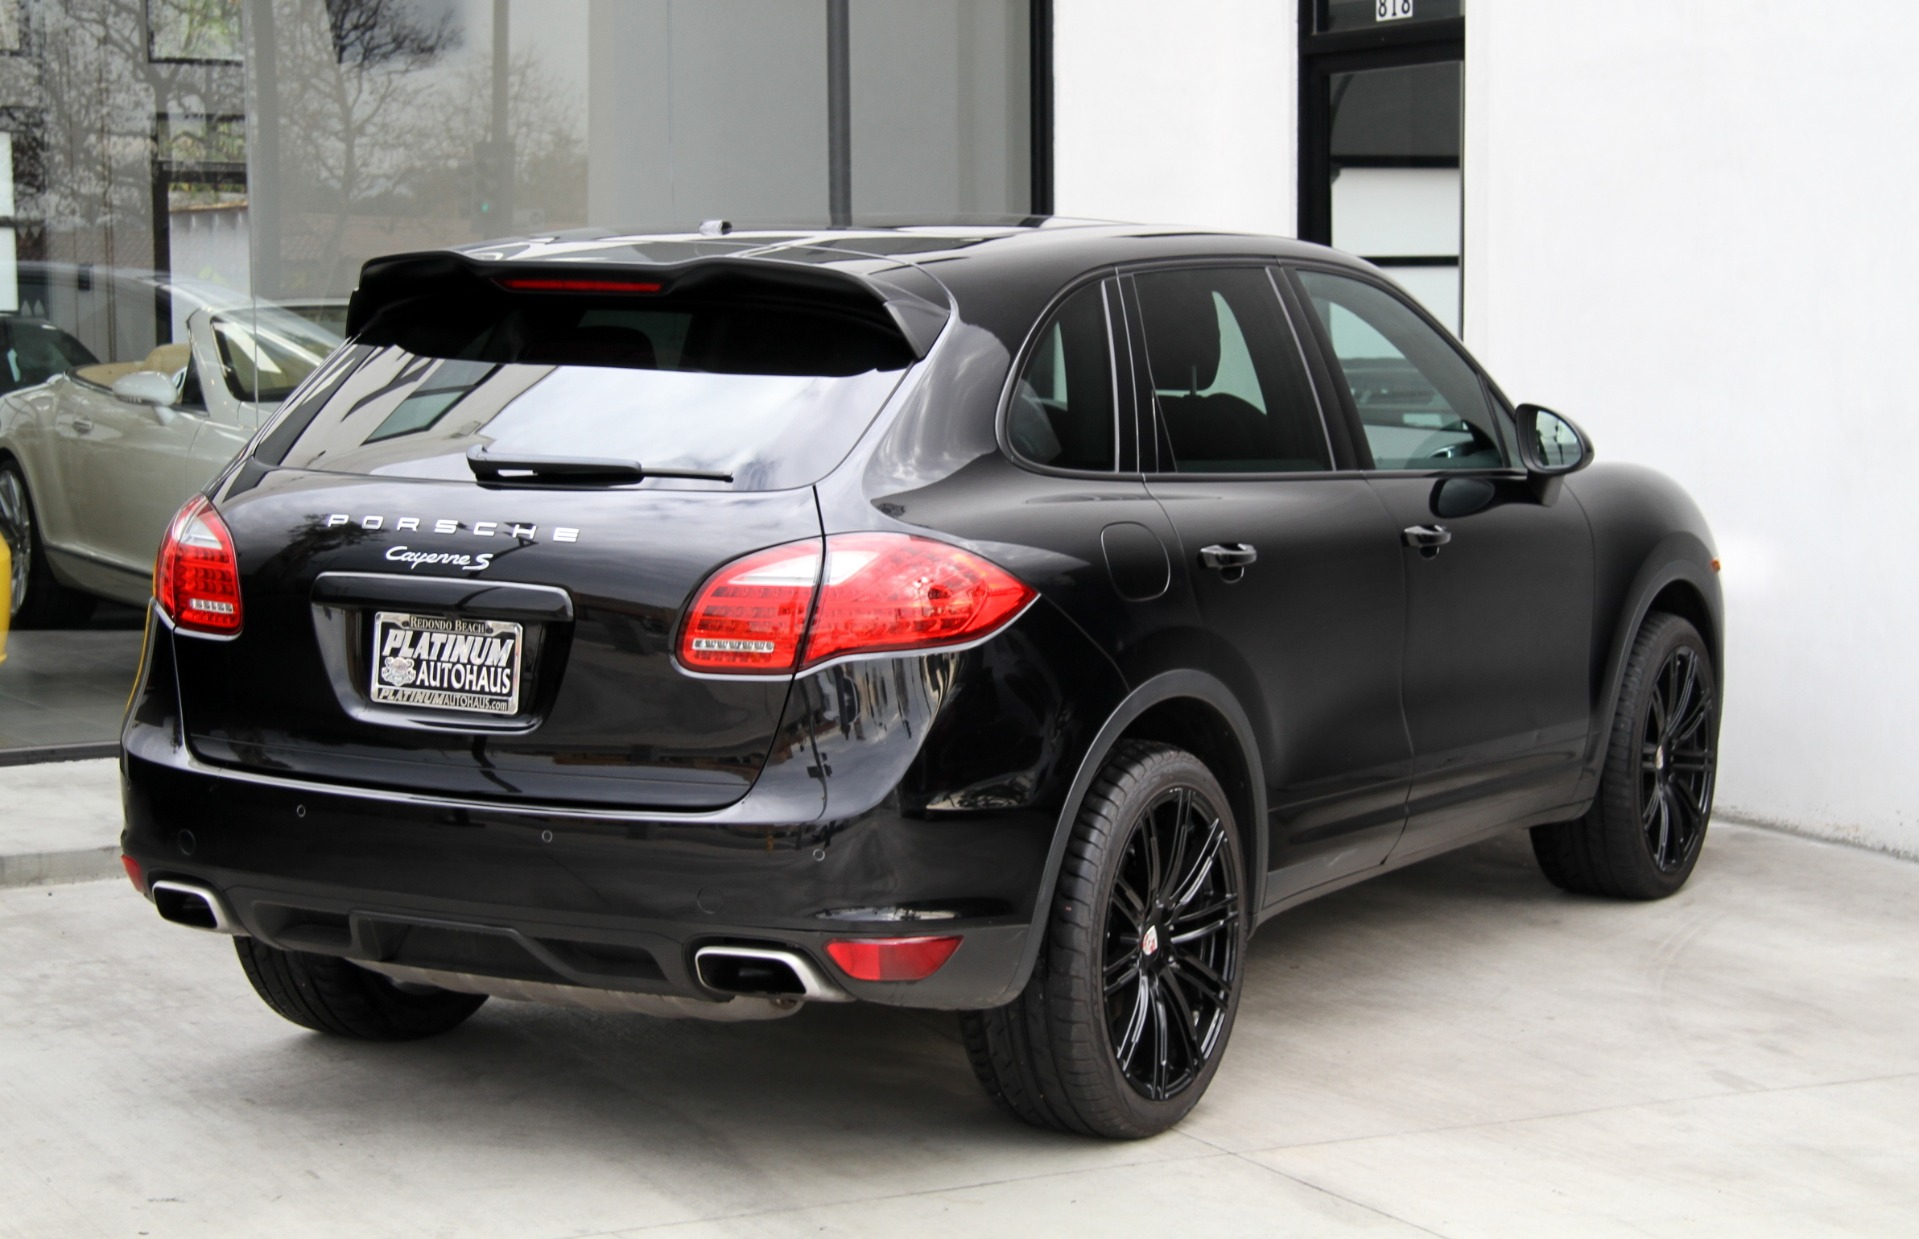 2014 porsche cayenne s stock 5919 for sale near redondo beach ca ca porsche dealer. Black Bedroom Furniture Sets. Home Design Ideas